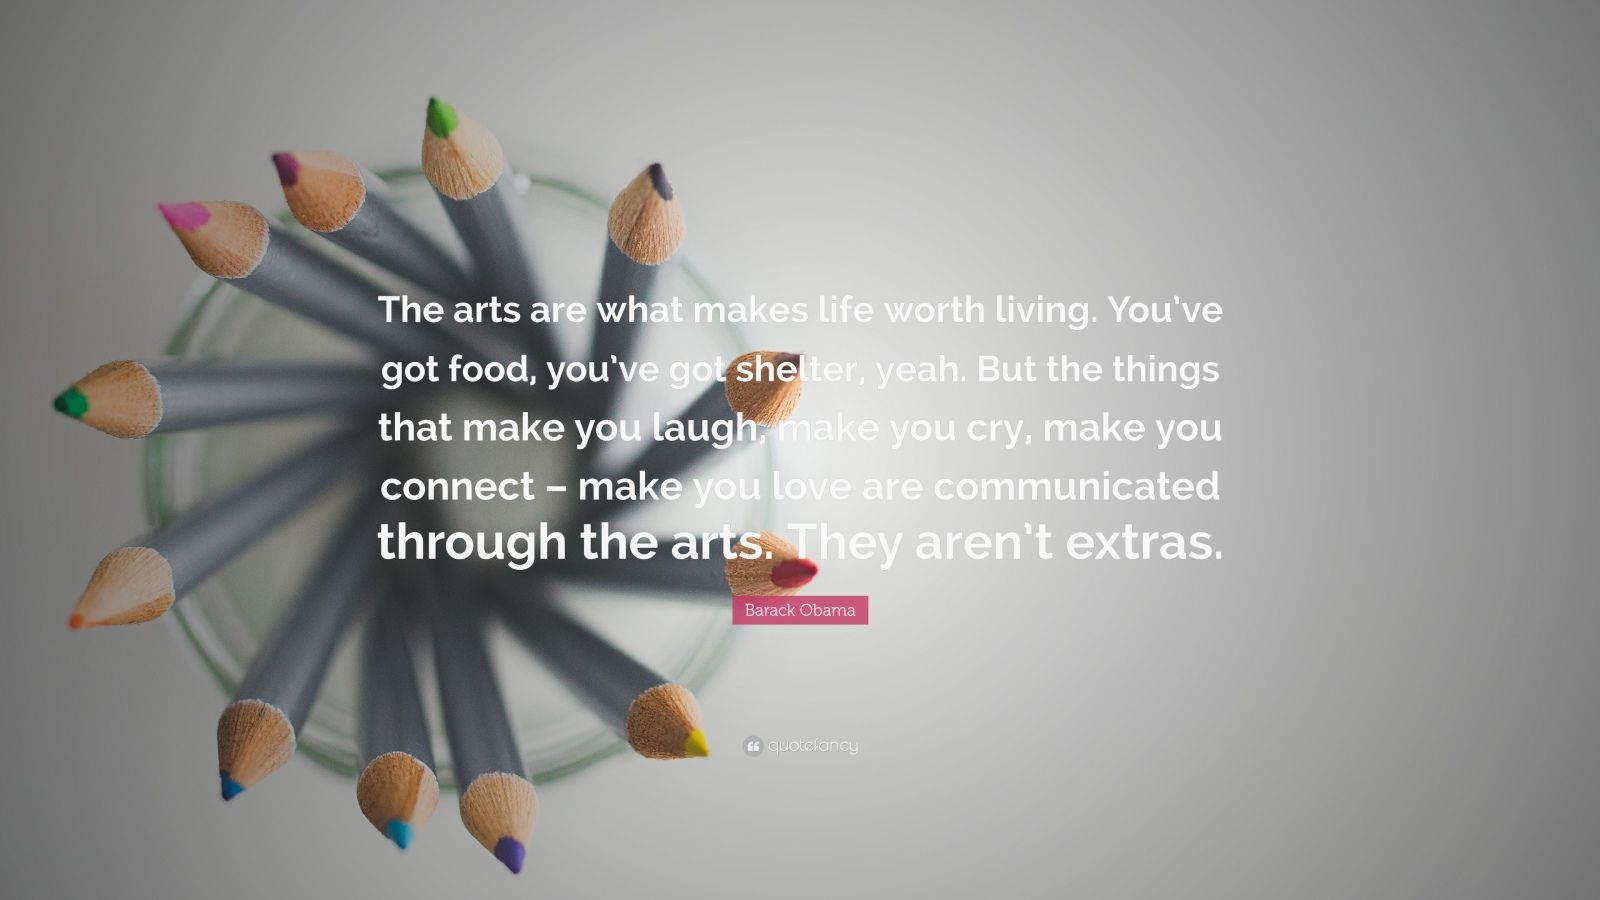 """Barack Obama Quote: """"The arts are what makes life worth living. You've got food, you've got shelter, yeah. But the things that make you laugh, make you cry, make you connect – make you love are communicated through the arts. They aren't extras."""""""